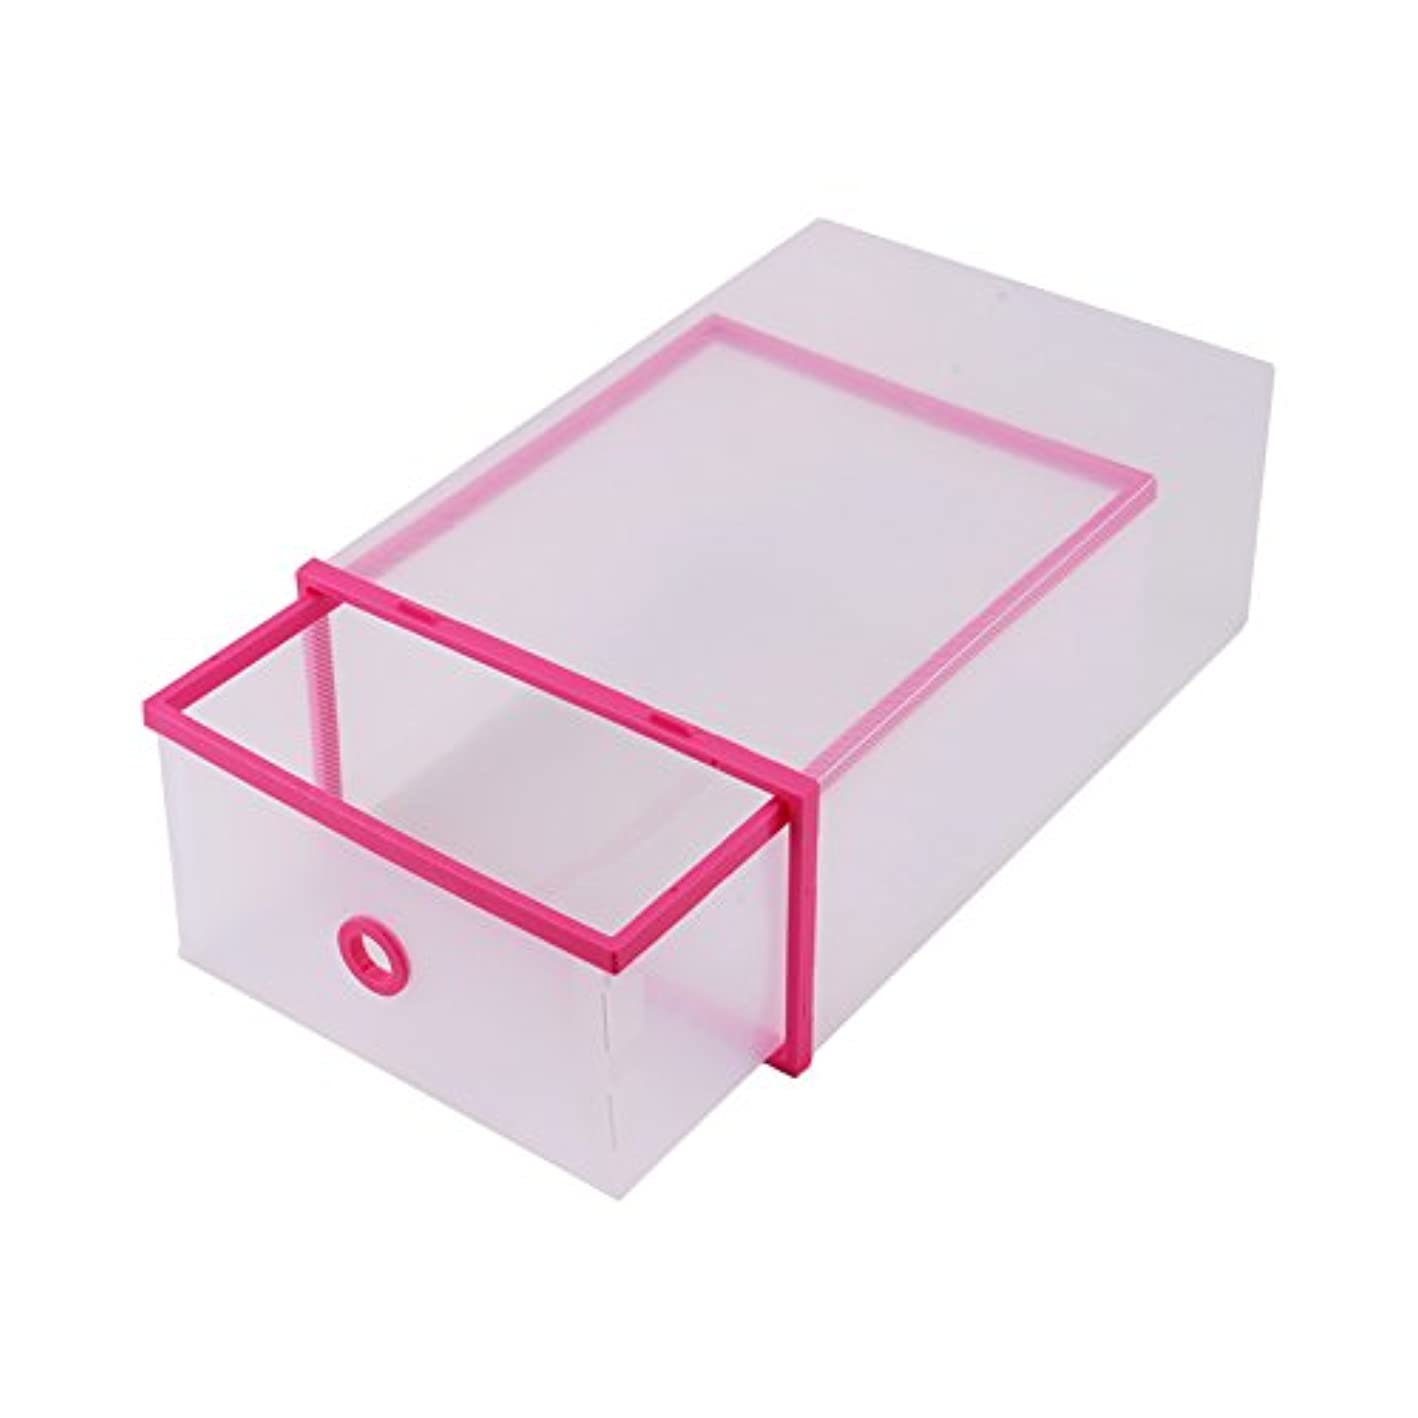 Cocoarm Shoe Storage Boxes, Multifunctional Plastic Shoe Storage Organizers, Large Transparent Closet Organizer for Shoe Drawers Home Storage, 5-Pack (Pink)